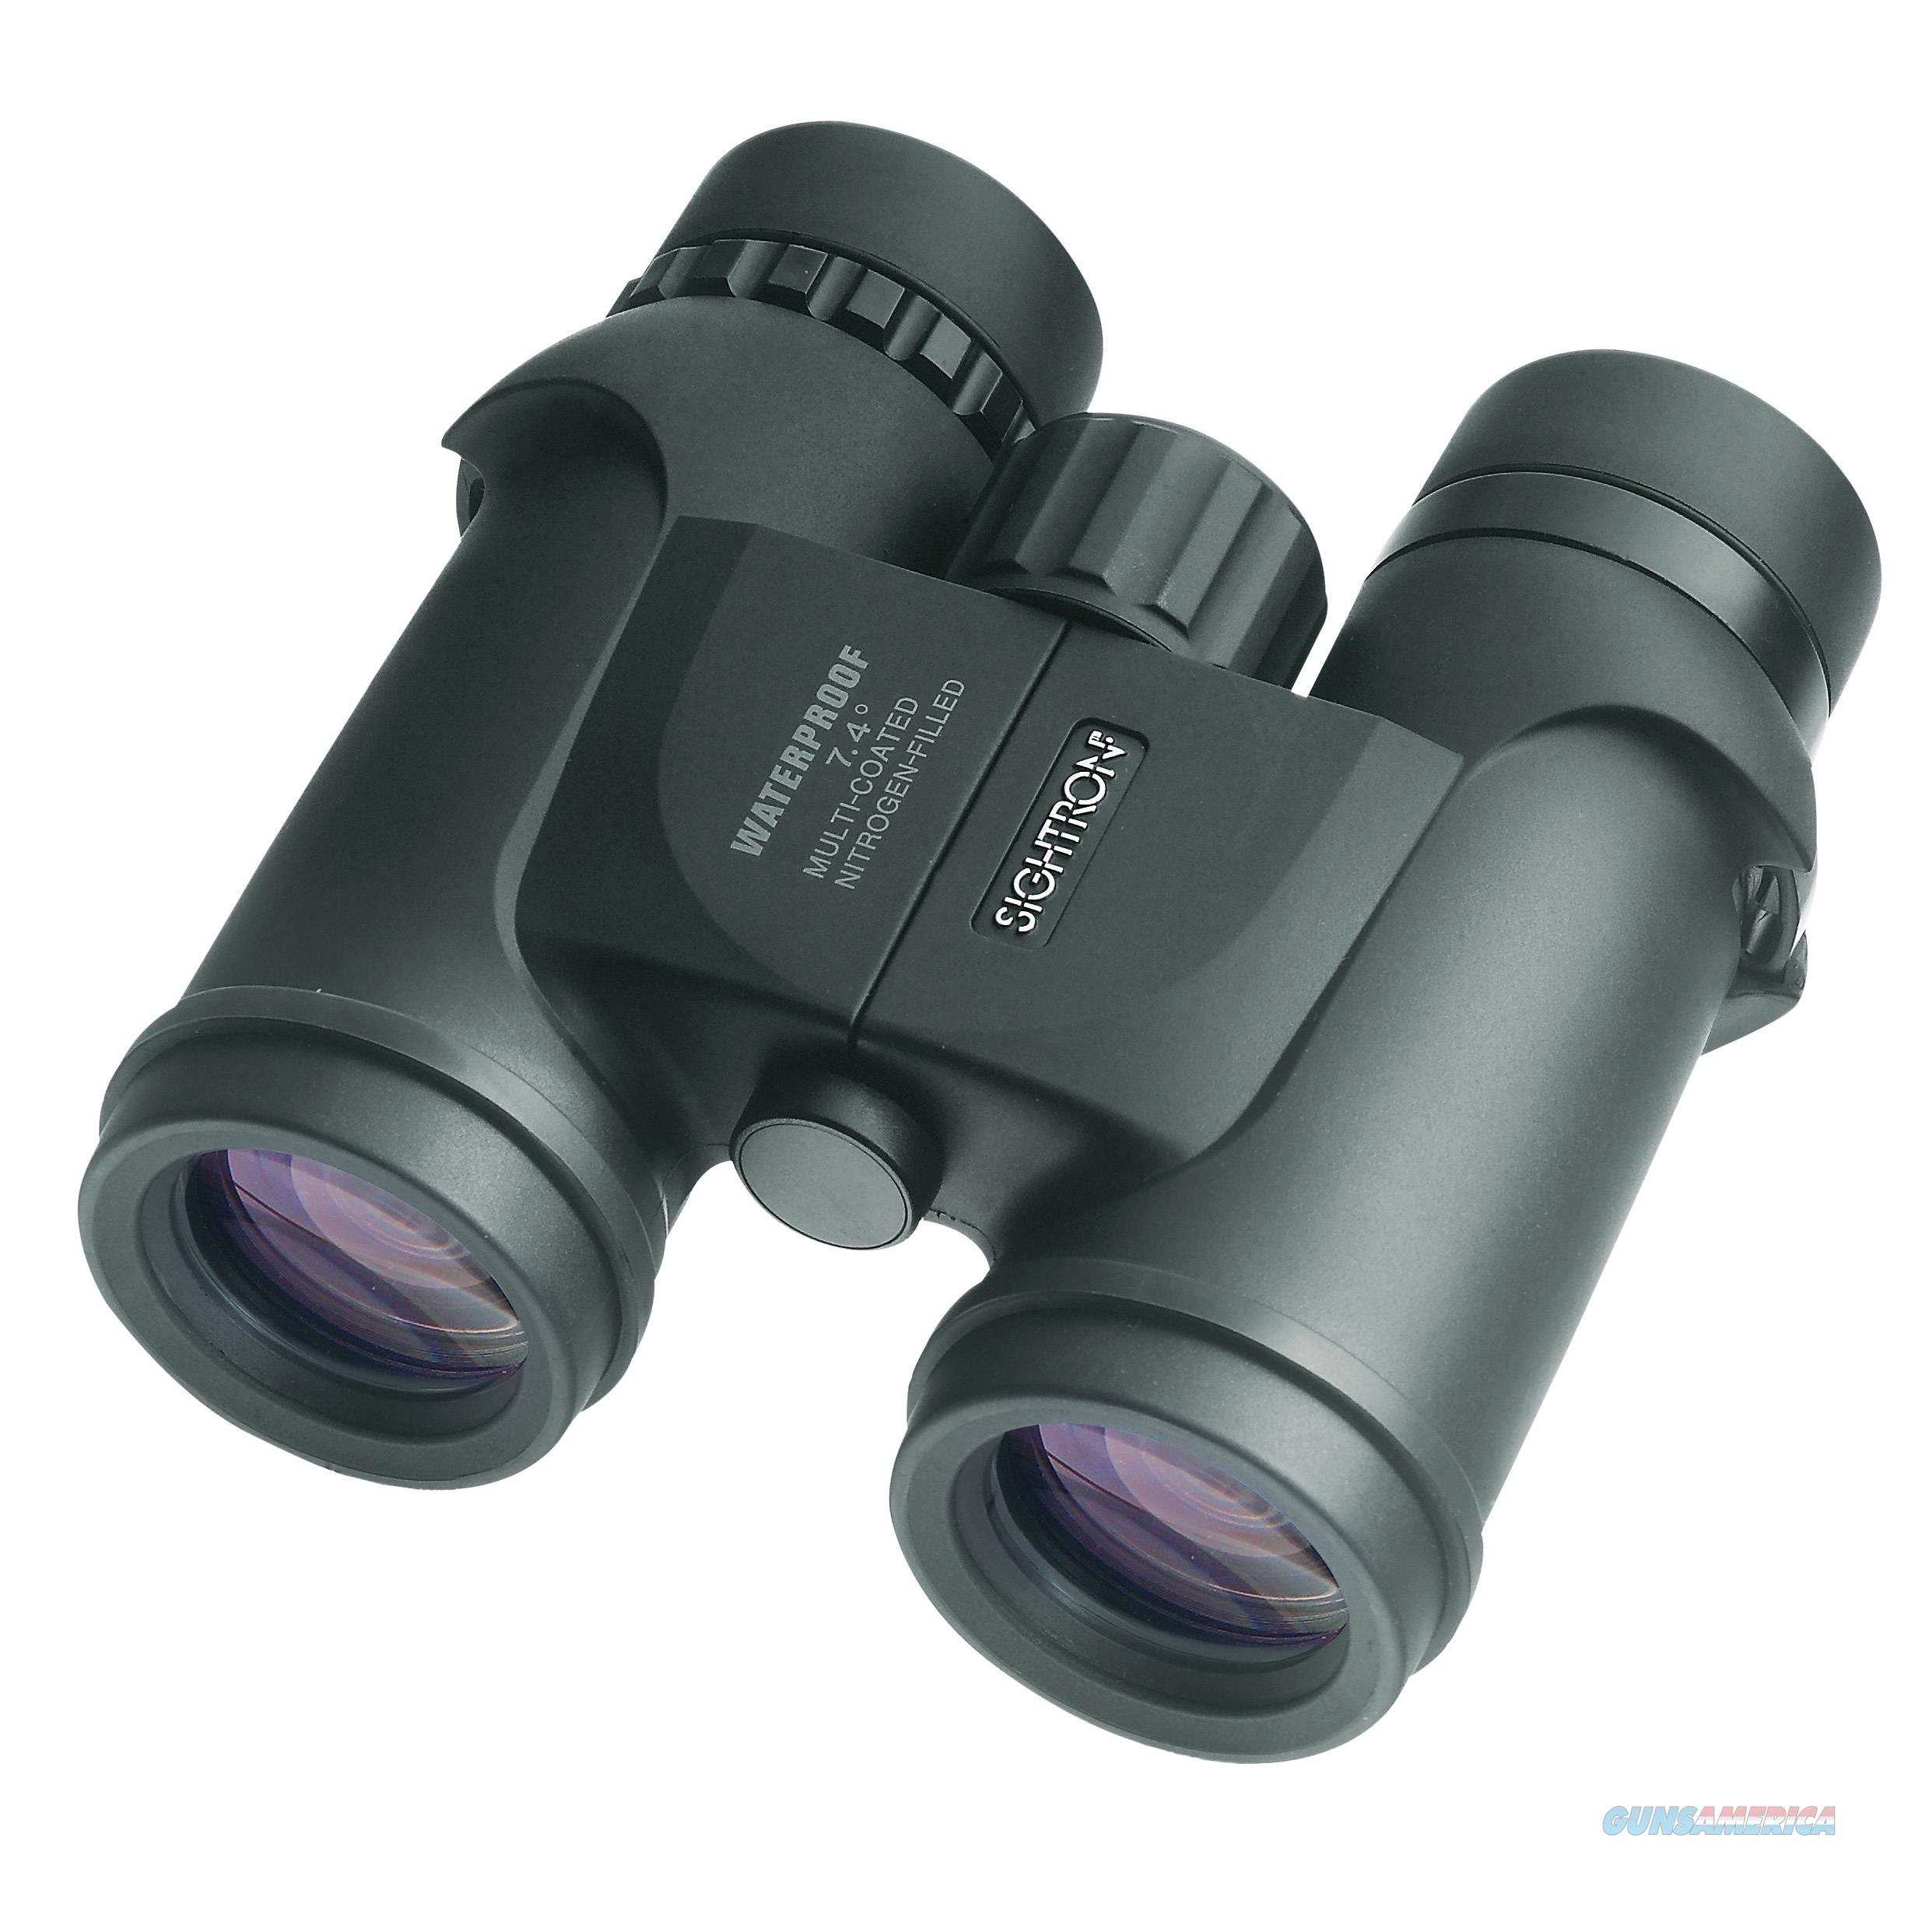 Sightron, Inc. Si Series Binocular Roof Prism 30005  Non-Guns > Scopes/Mounts/Rings & Optics > Non-Scope Optics > Binoculars